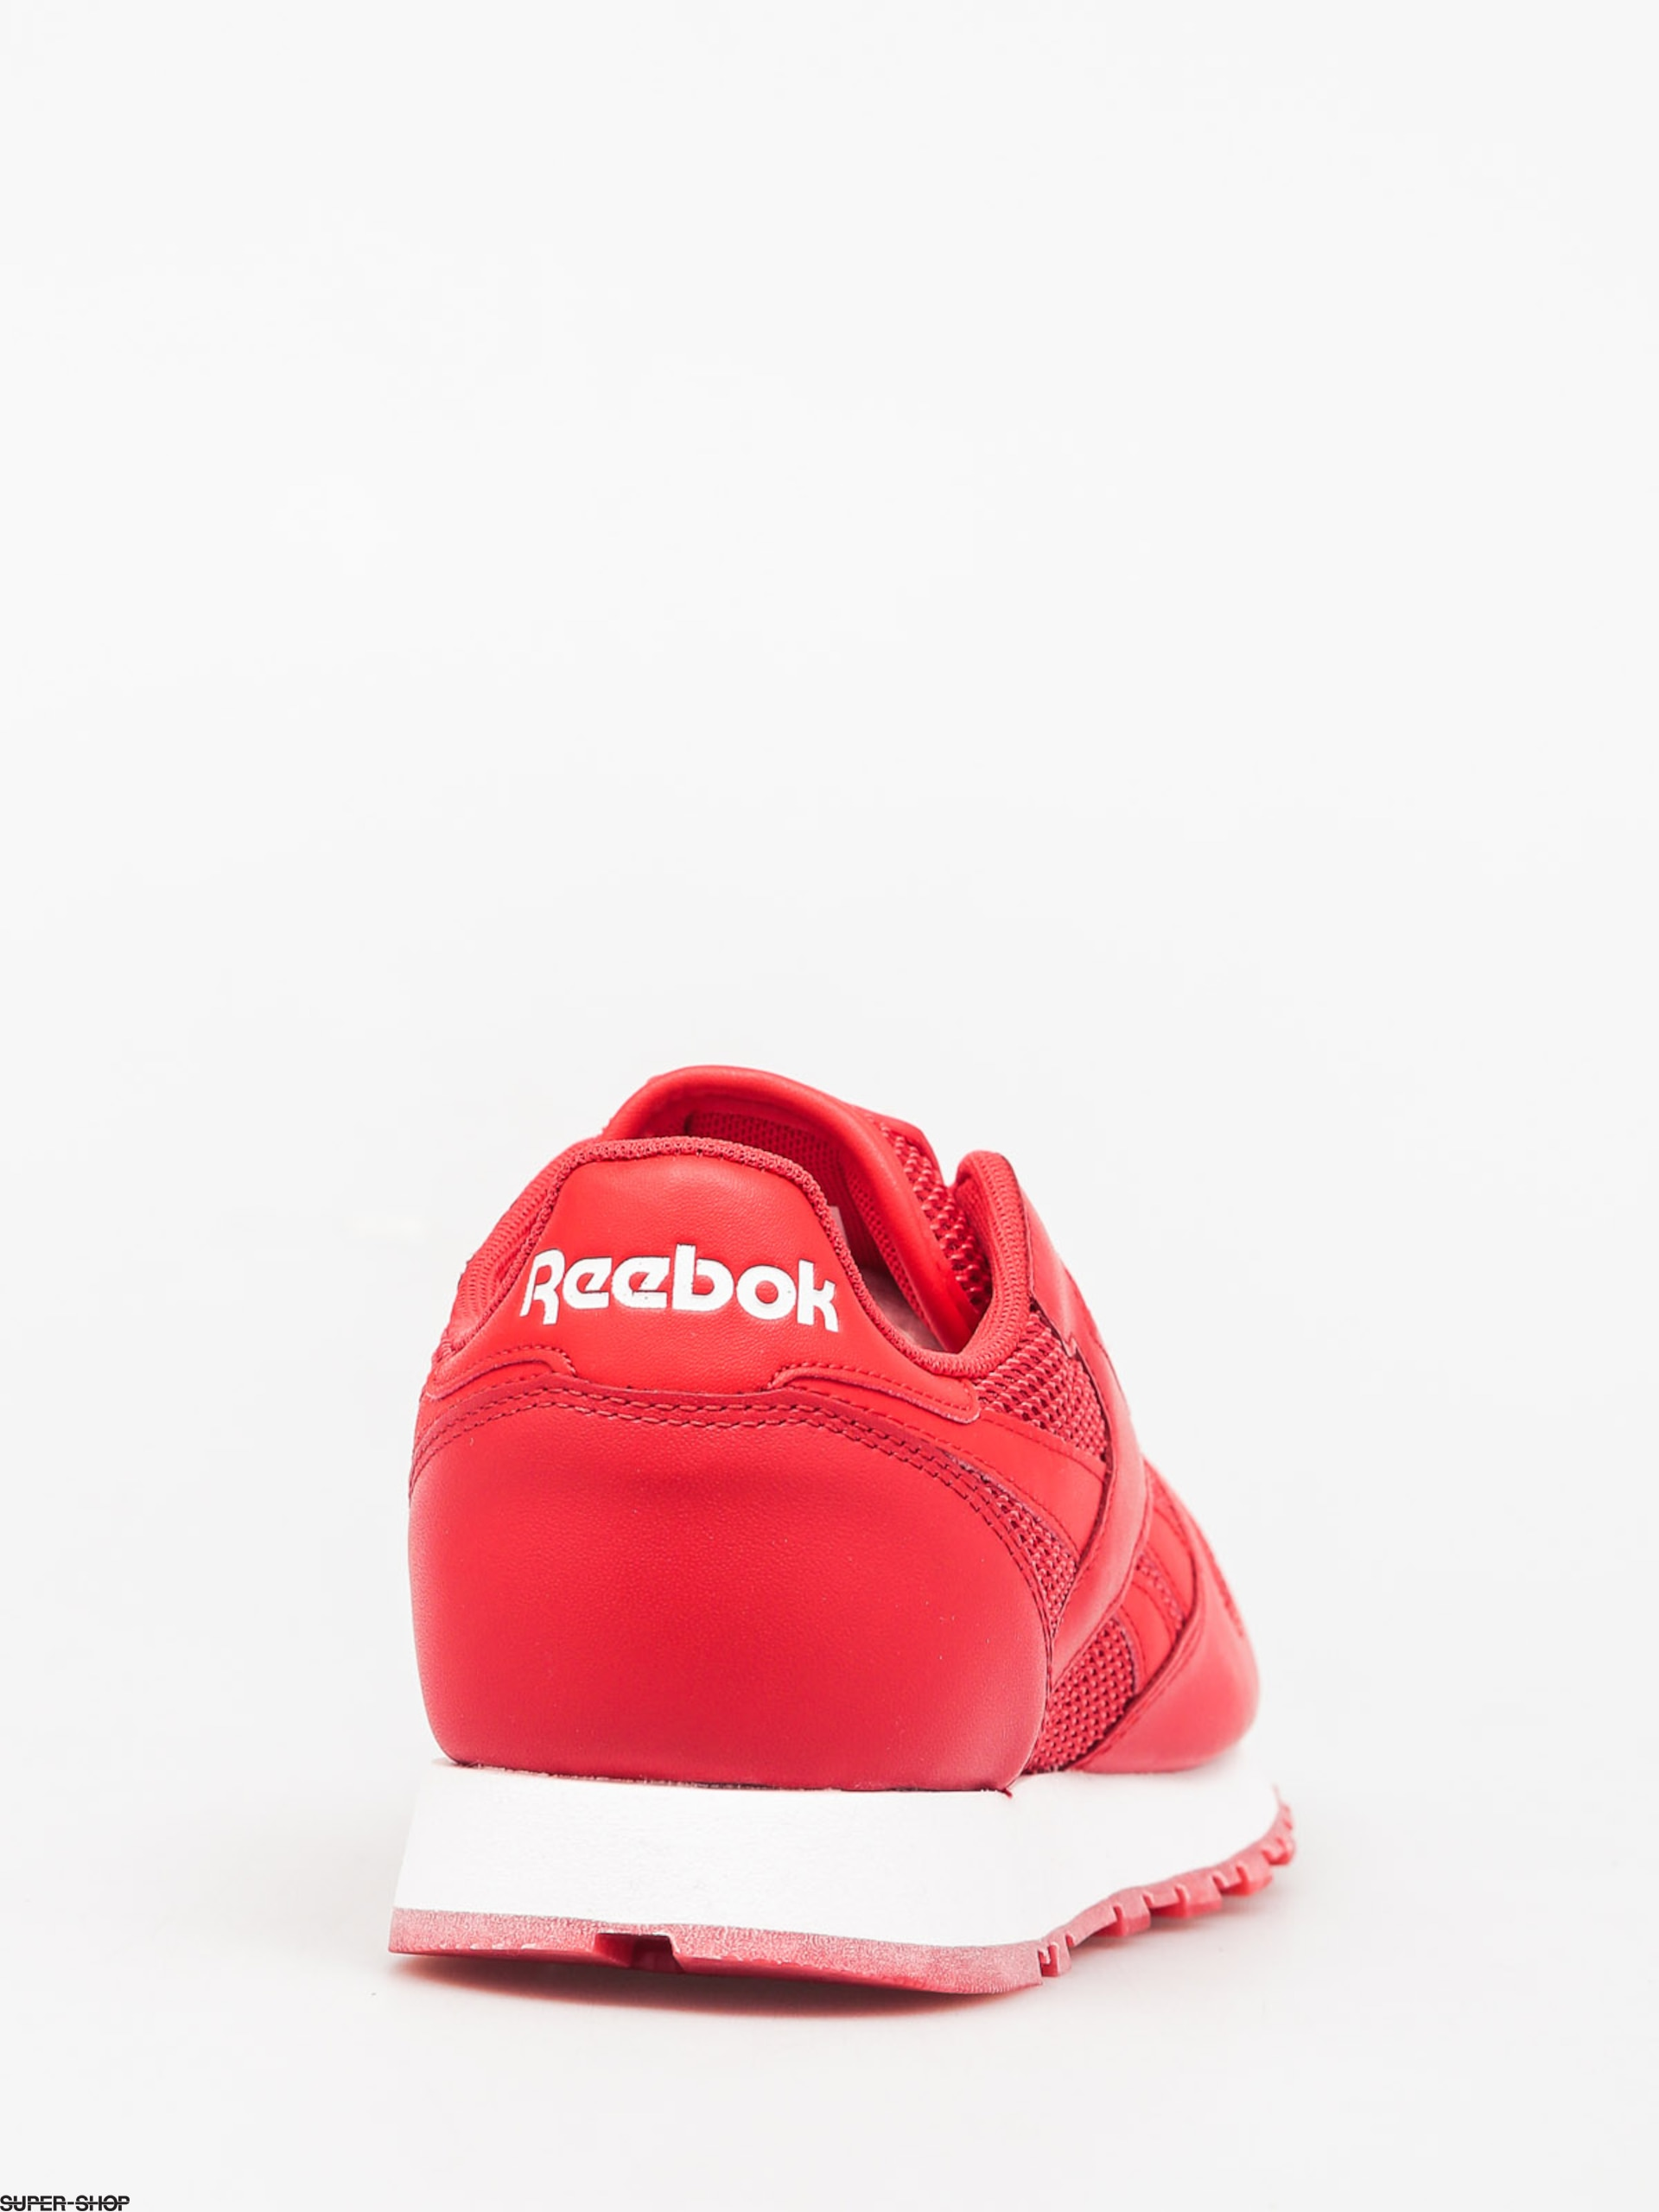 adcad4a9f527 Reebok Shoes Classic Leather Nm (primal red white poppy red)